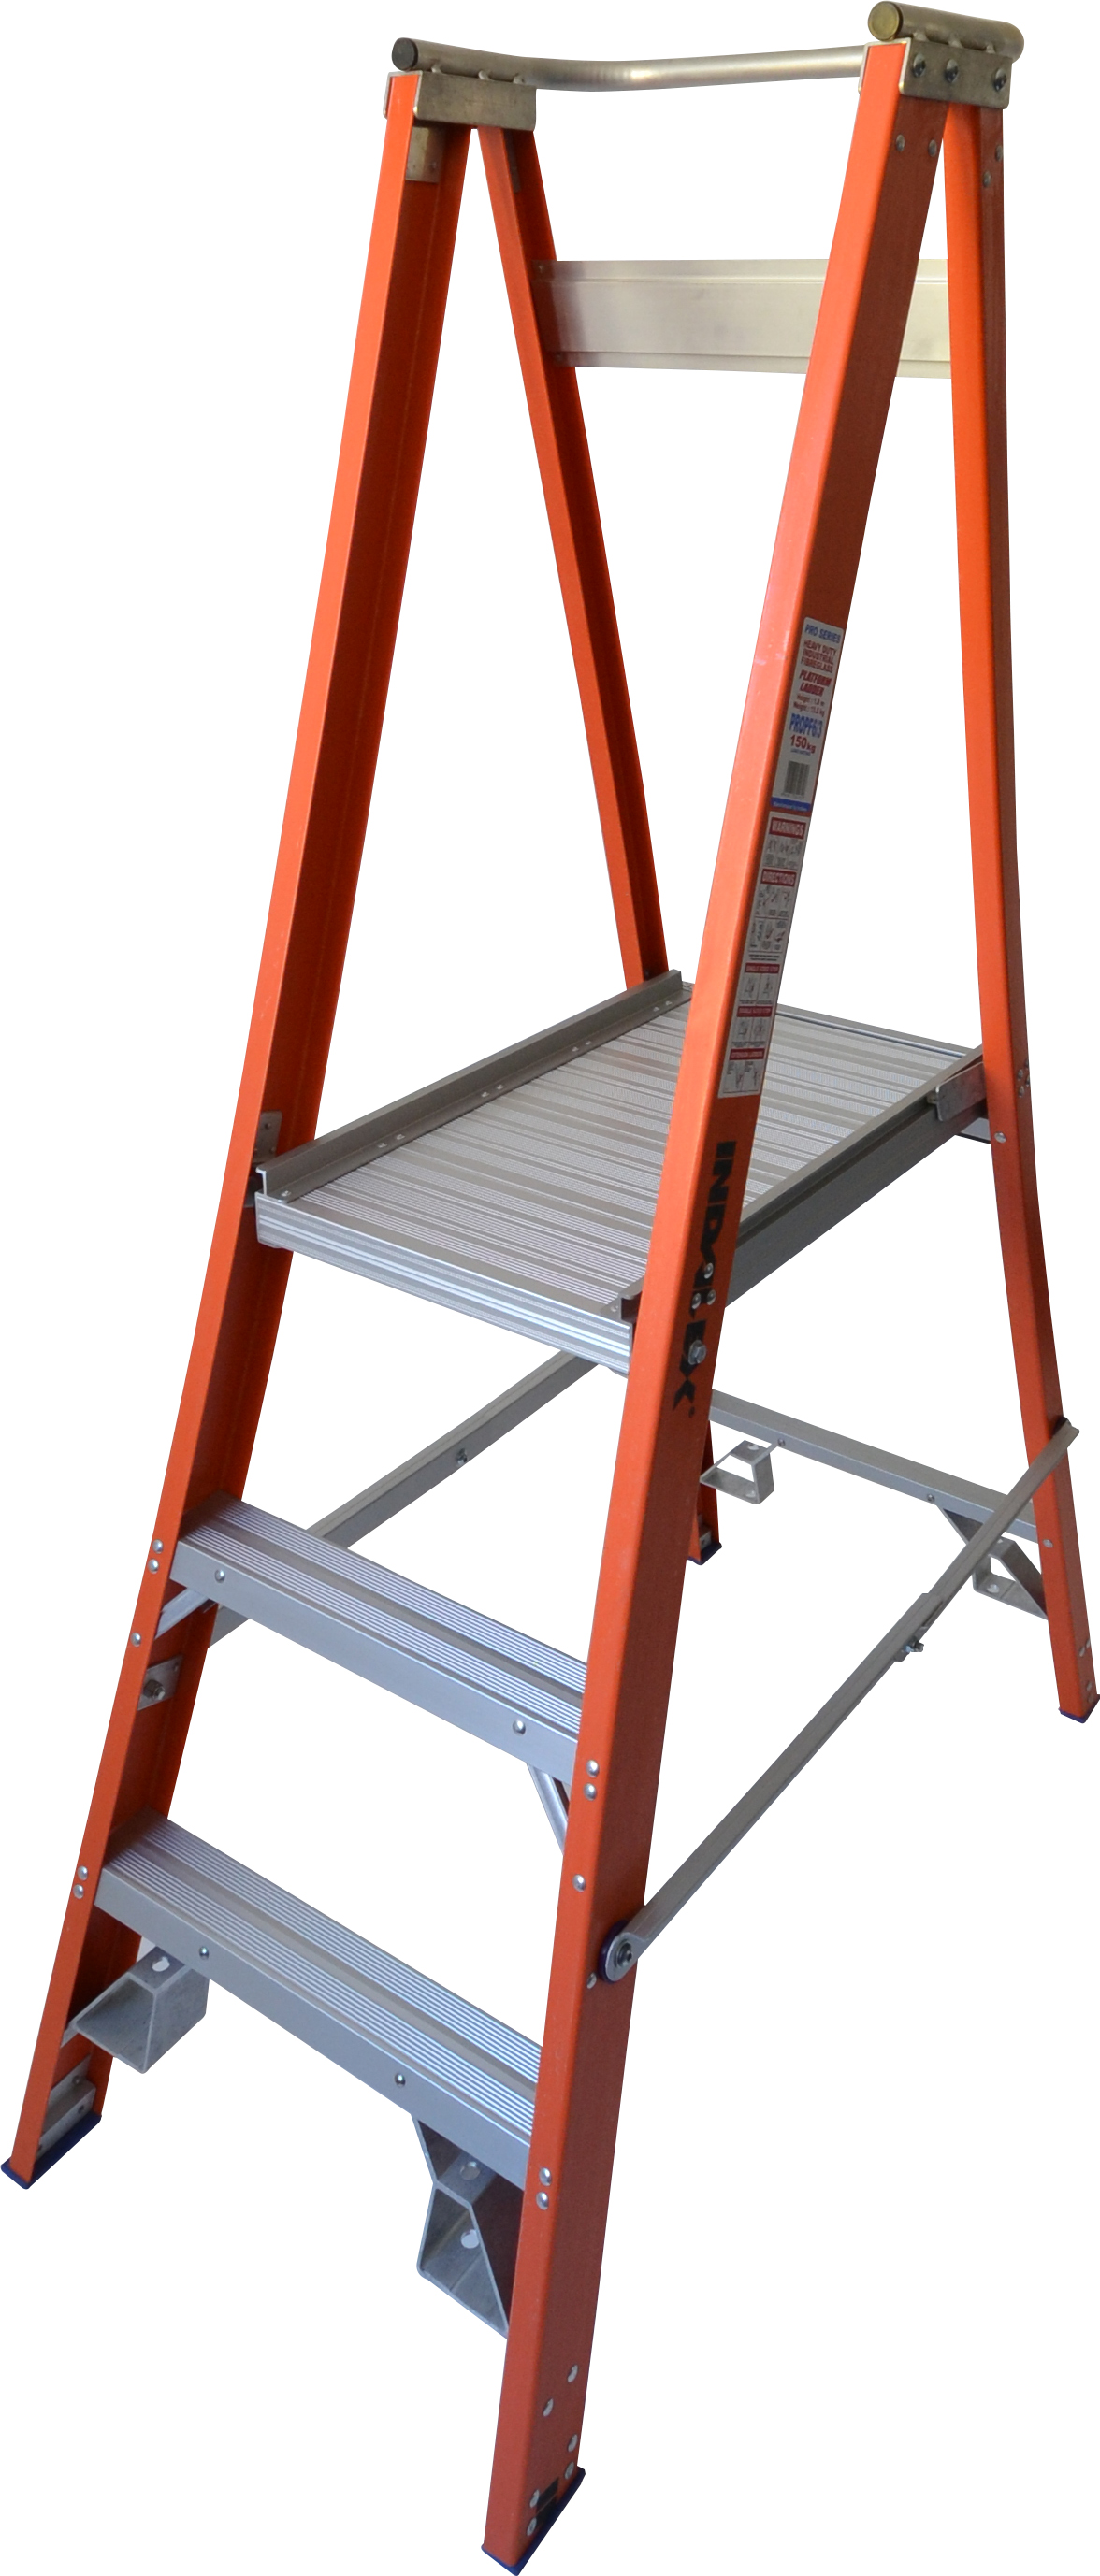 Our 3 step fiberglass platform ladders have 150kg capacity, 0.6M platform height & 1.5M total height. With solid 90cm high guard rail & anti slip work platform, its non conductive and conforms to Australian safety standards.